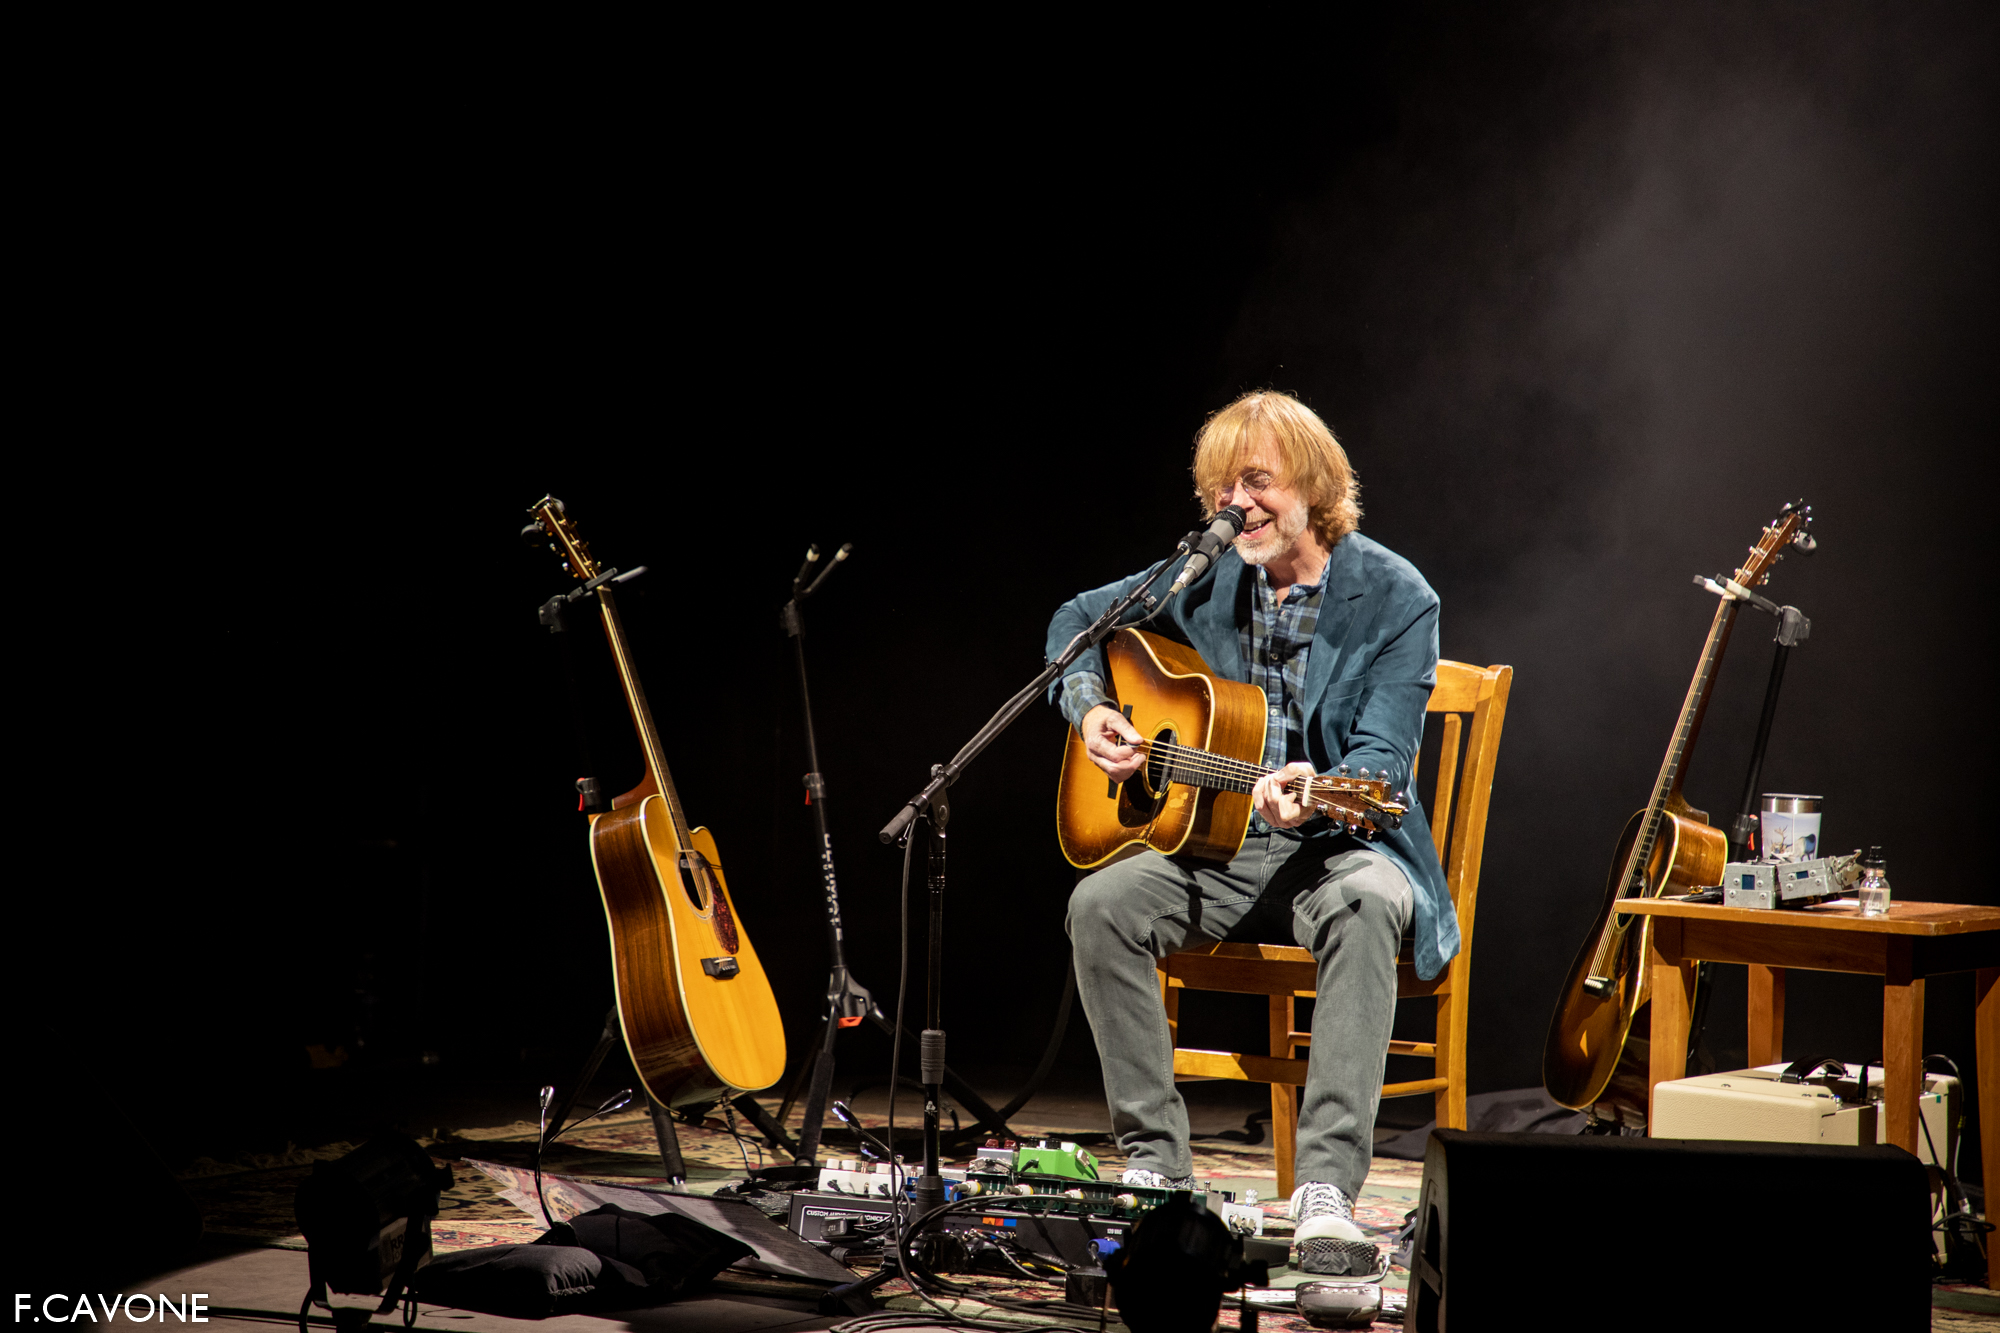 Trey Anastasio Brings Music Back To SPAC For The First Time Since 2019